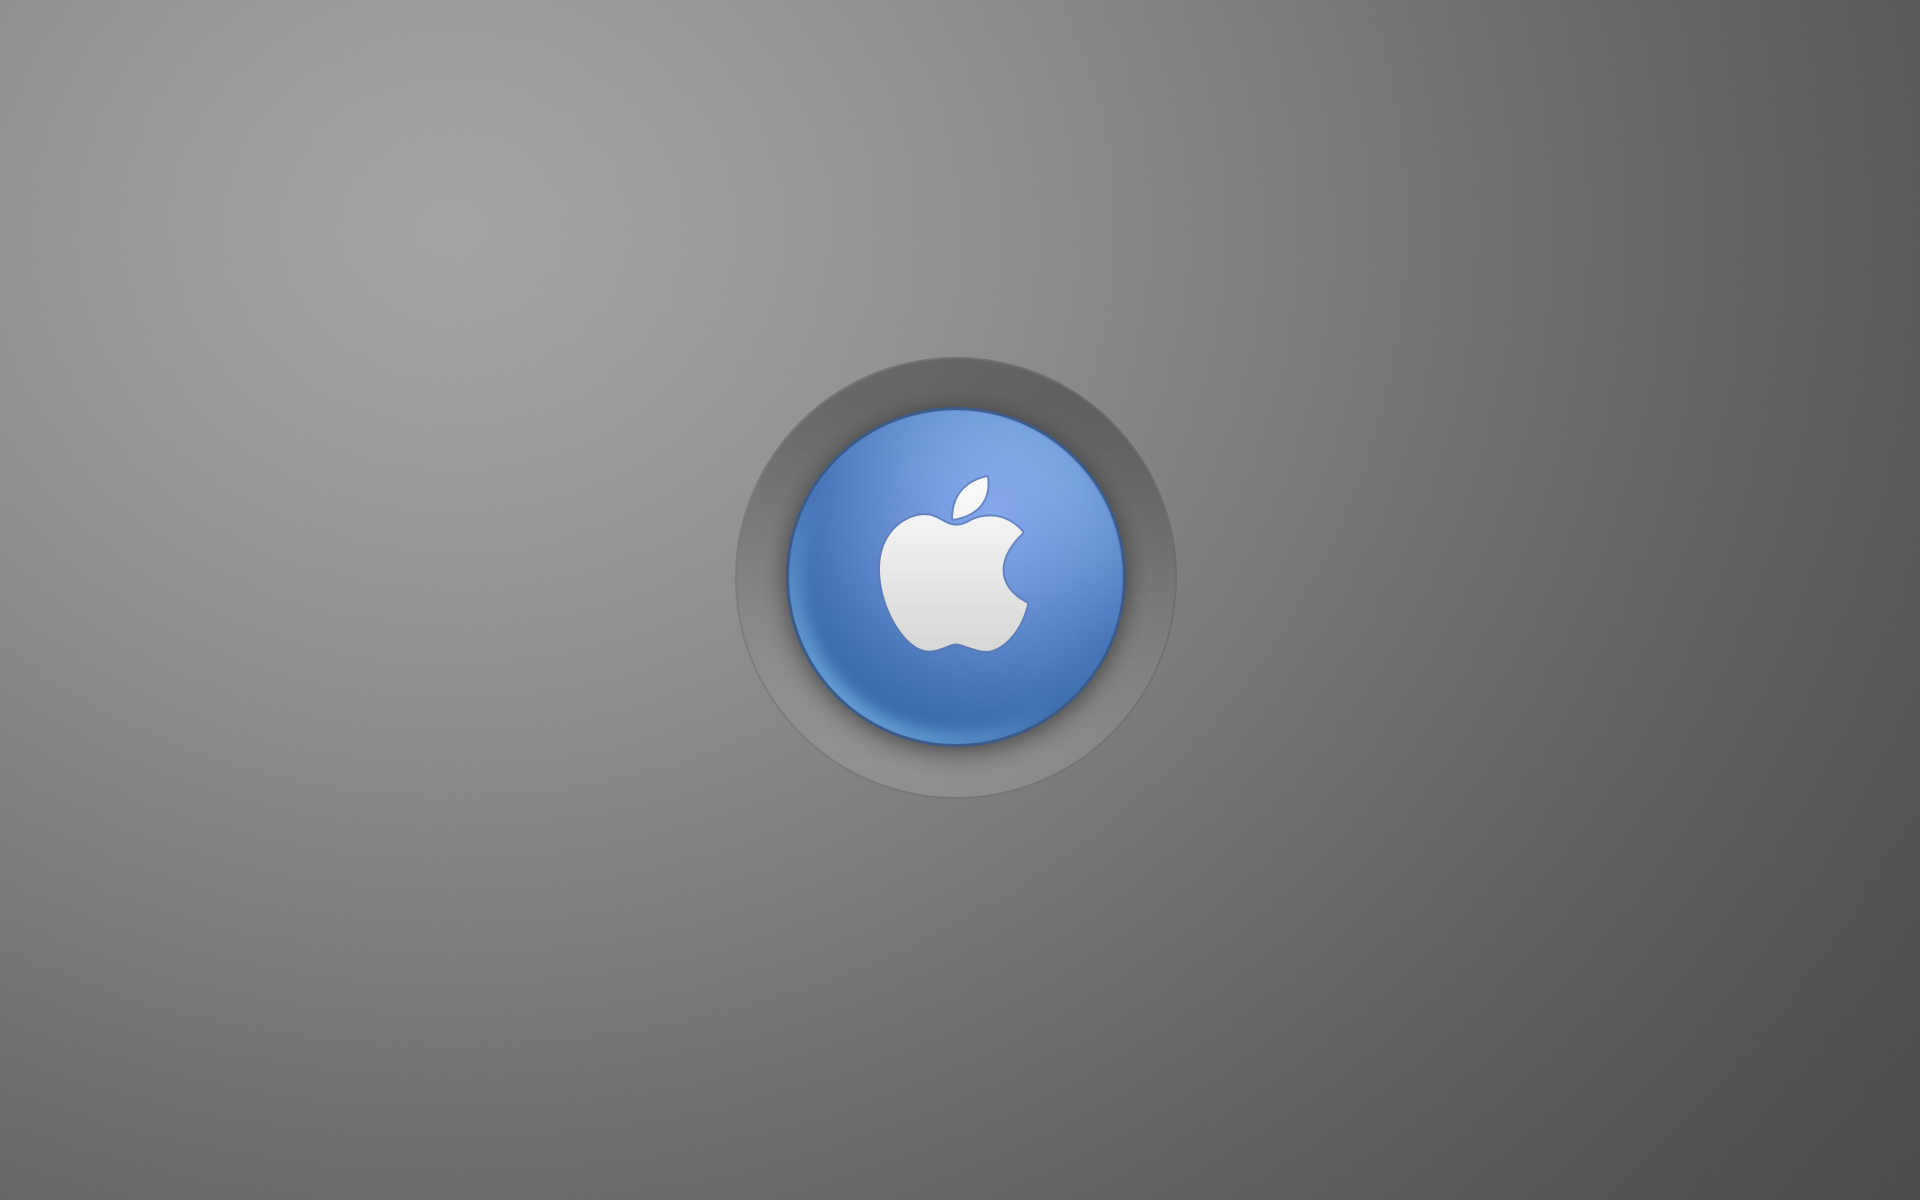 Apple Button Wallpaper